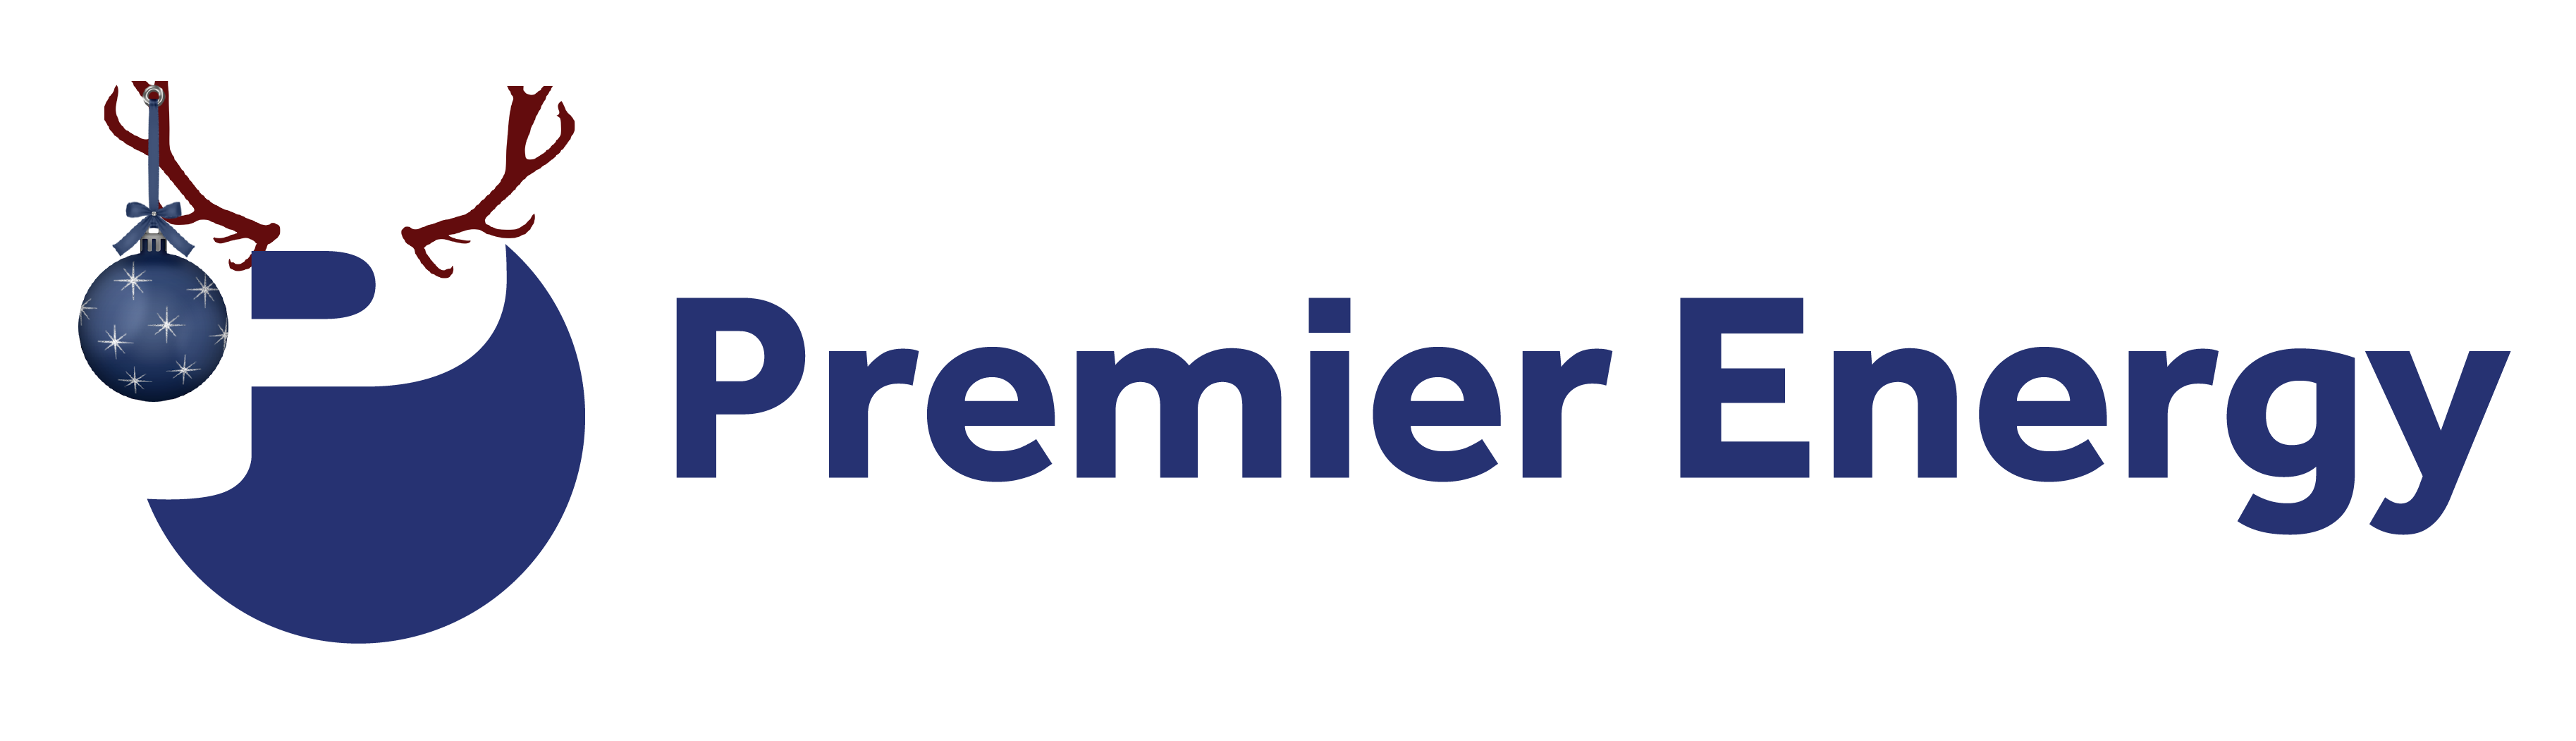 Premier Energy Christmas Logo with antlers and a Christmas ornaments